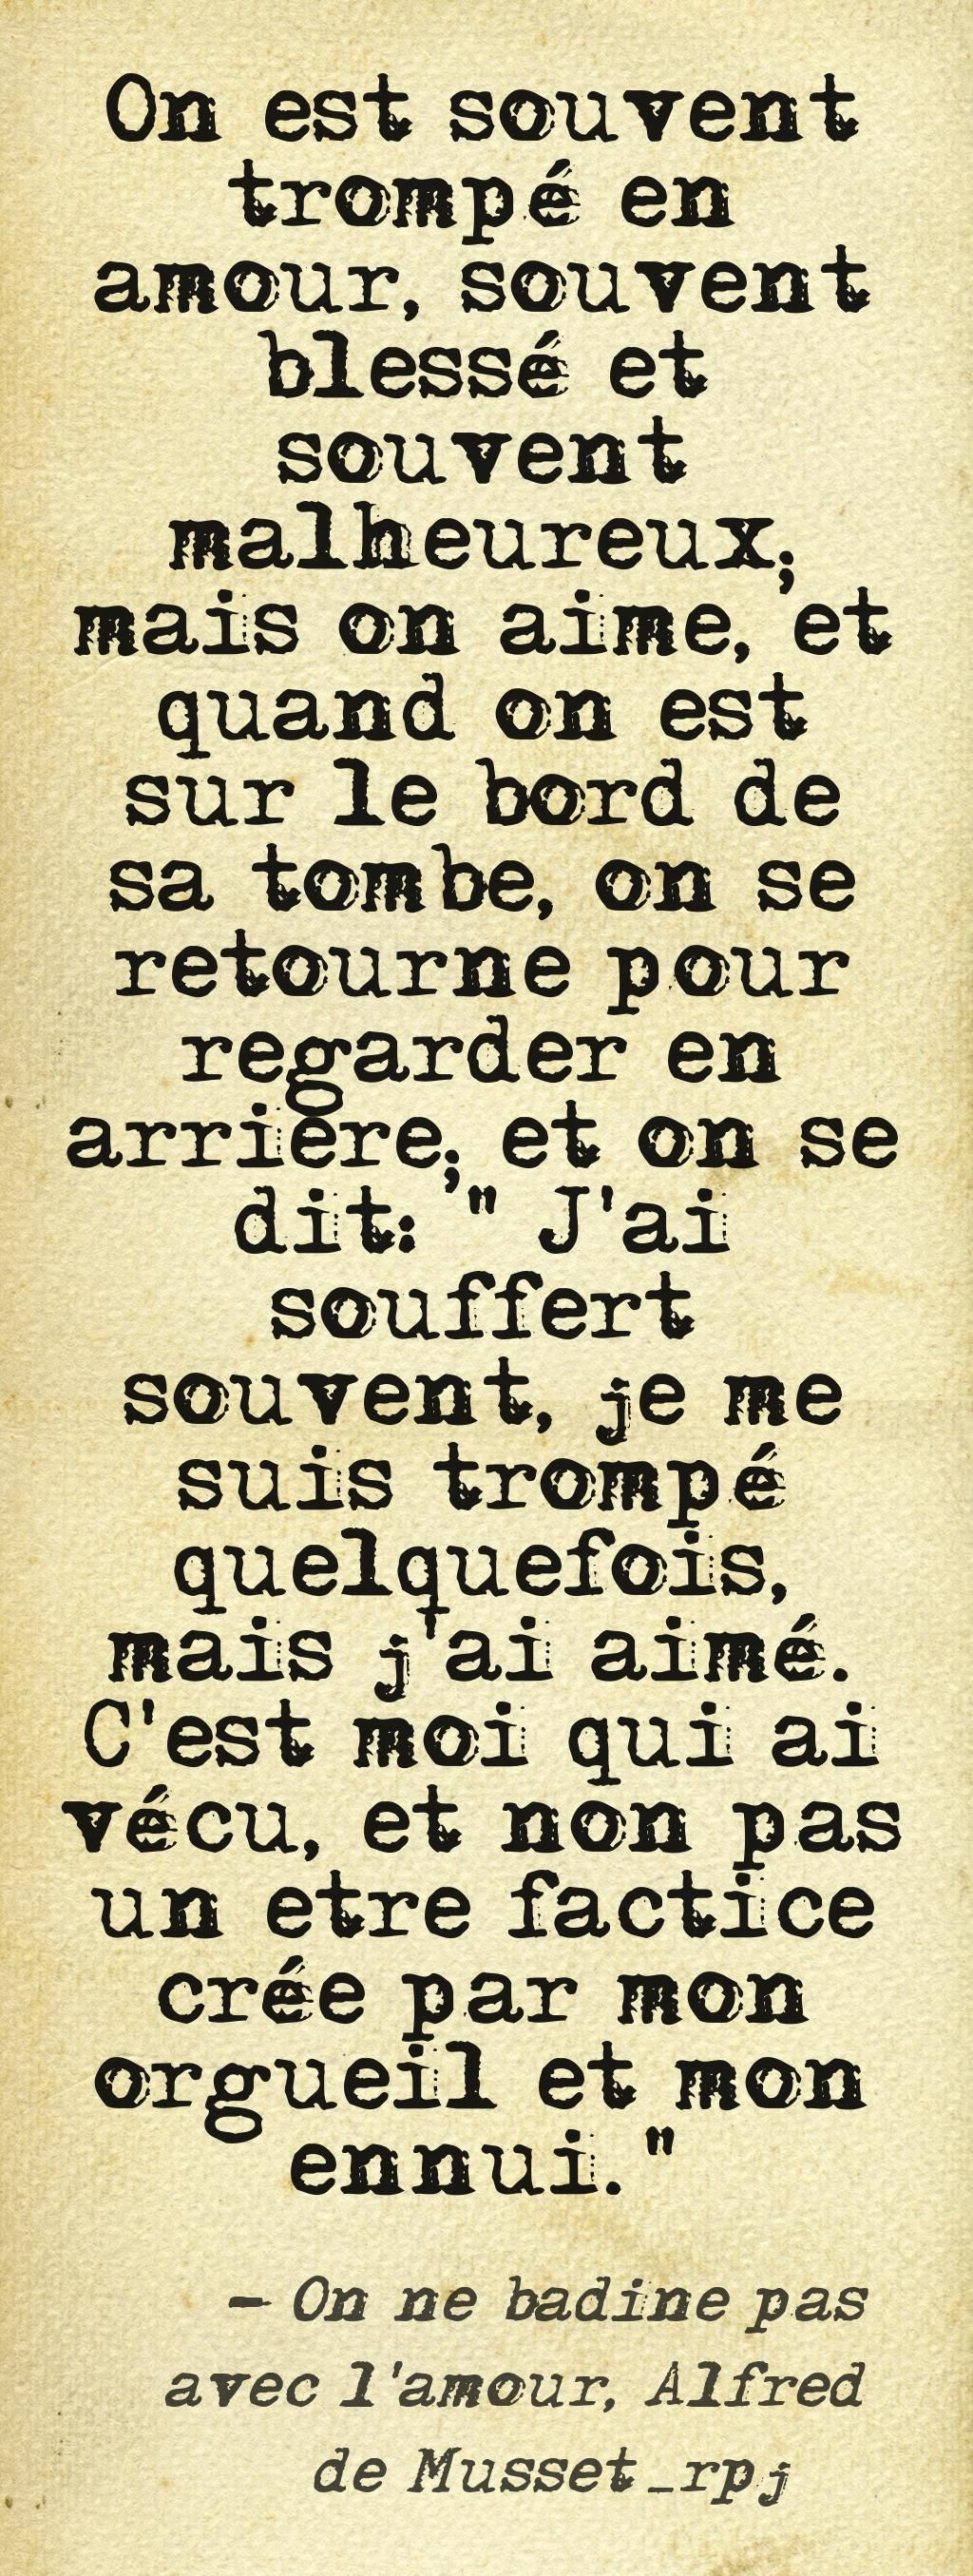 On Ne Badine Pas Avec L Amour Citation : badine, amour, citation, Pinstamatic, Pinterest, Citations, Mots,, Citation,, Citation, Pensée